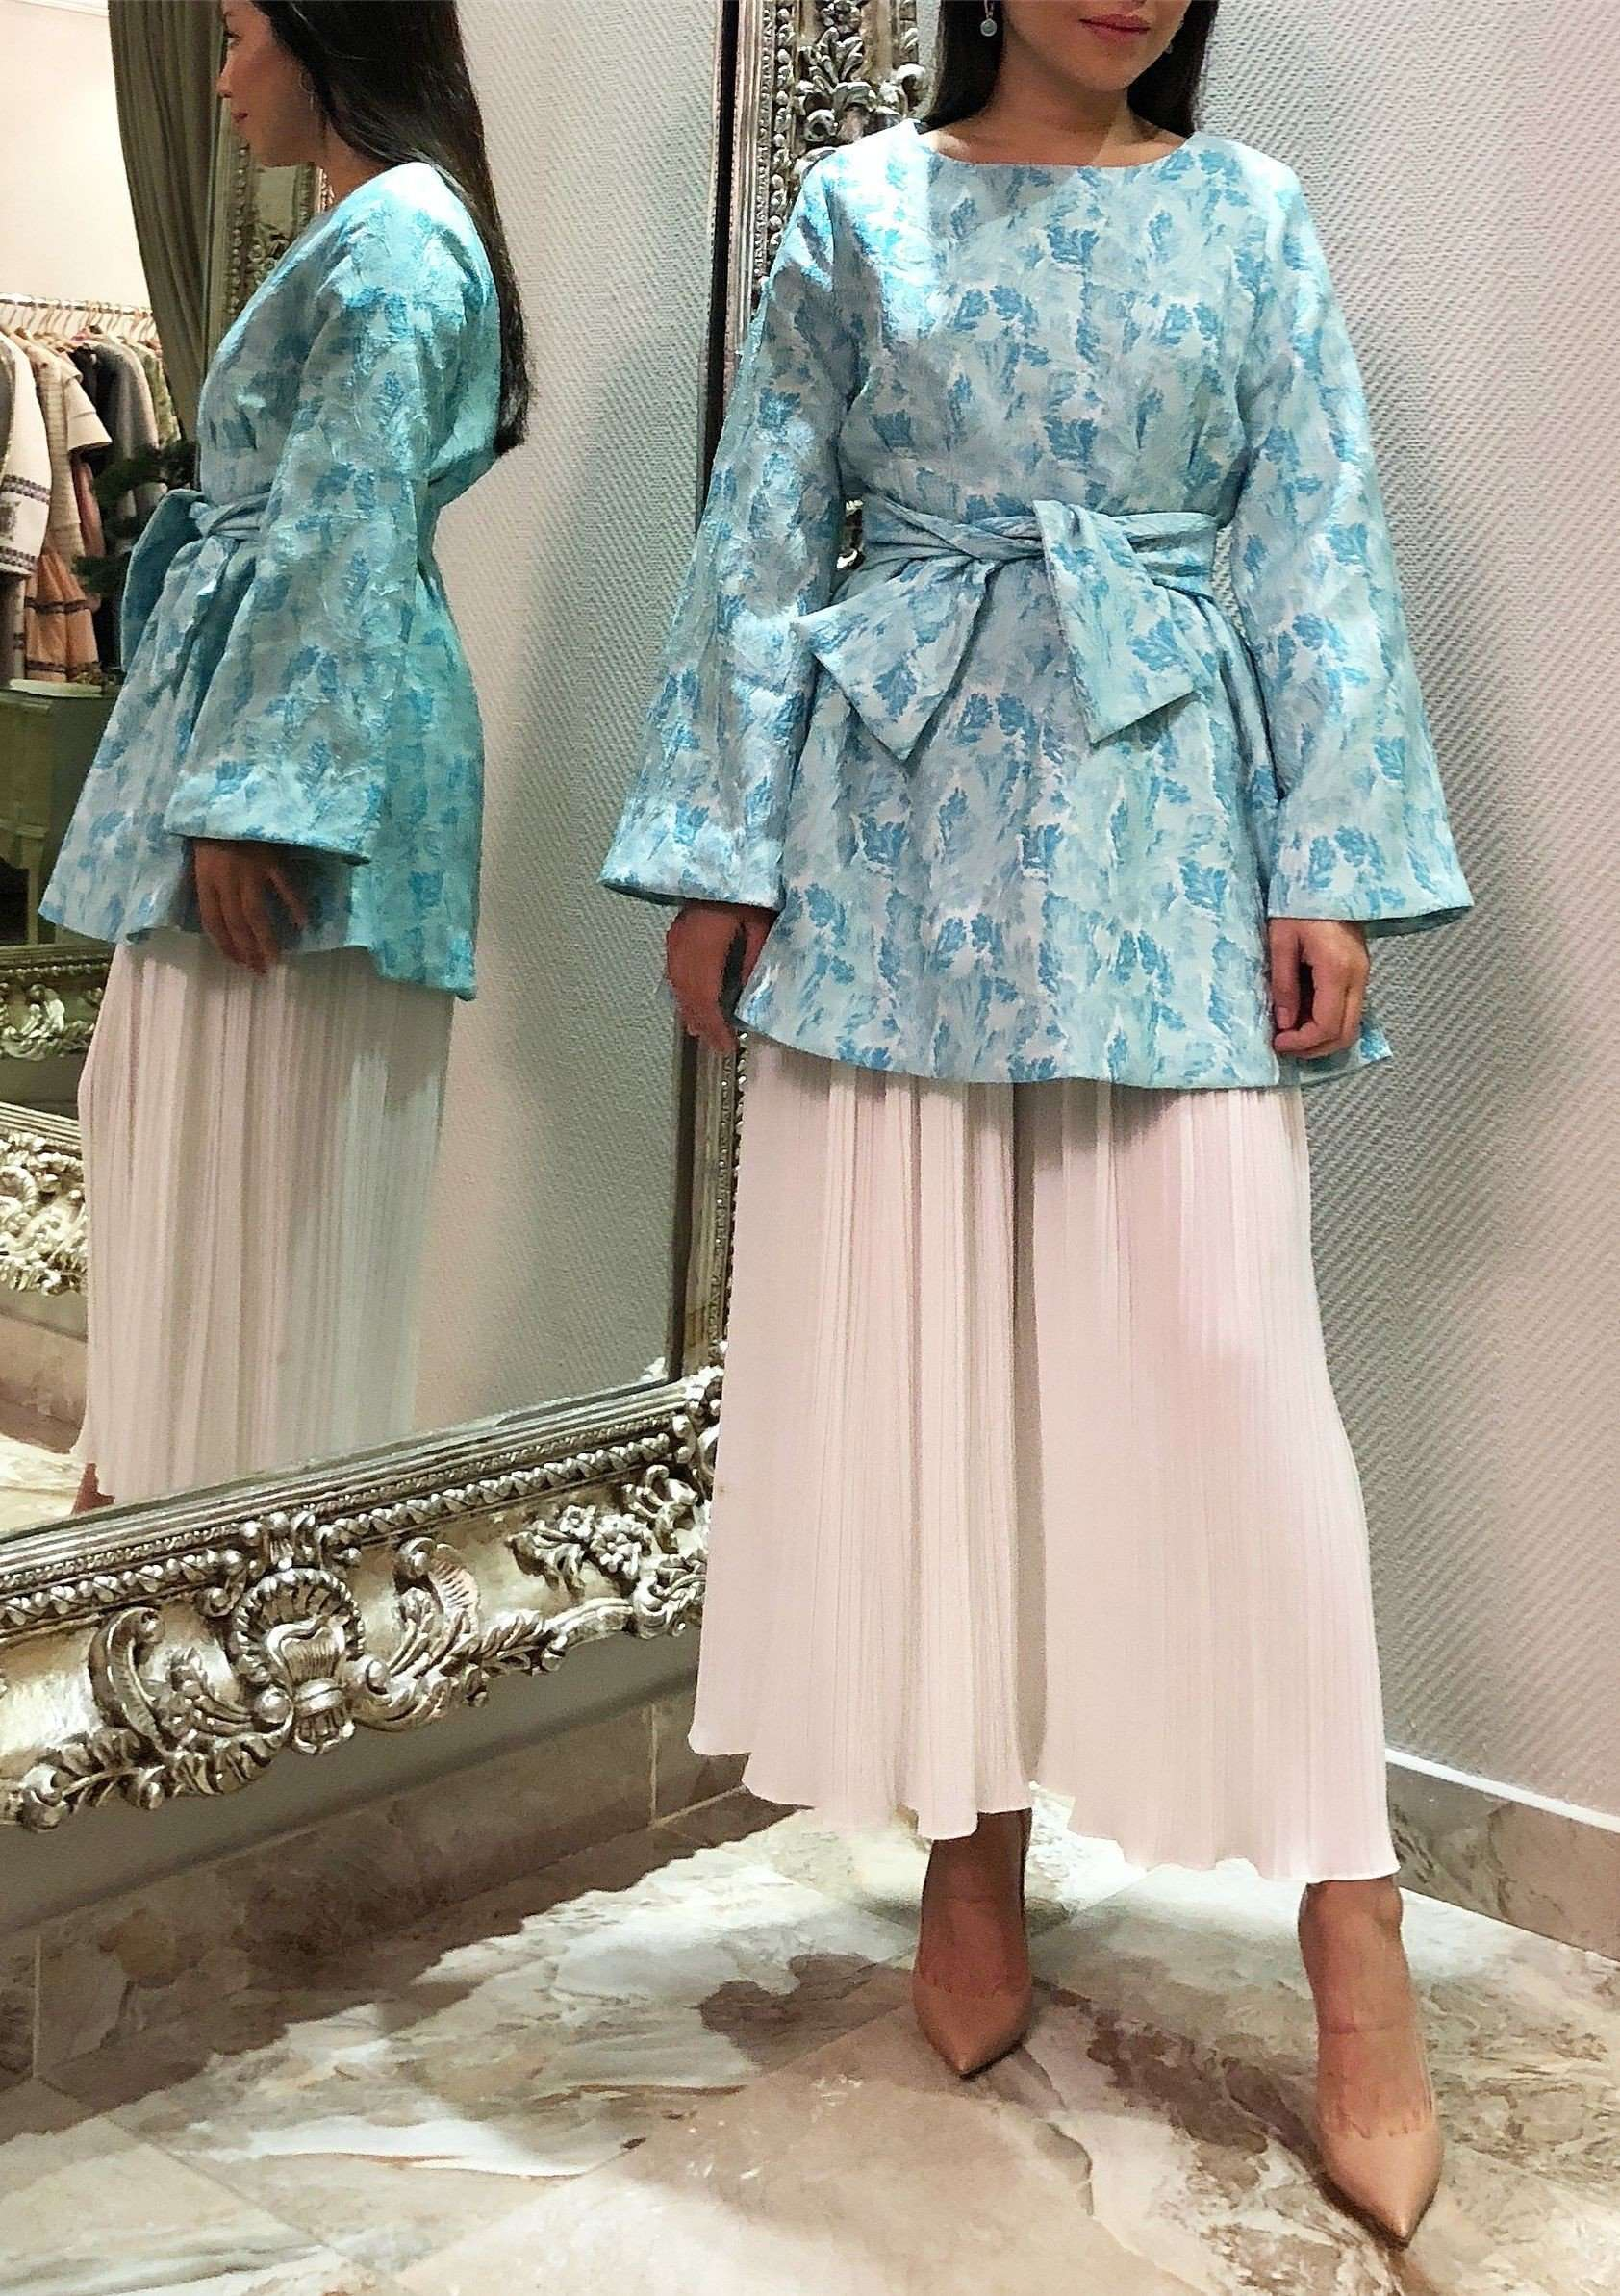 Kimono inspired bow blouse - Turquoise,SARA Z, Curated Designer at Freesigners.com